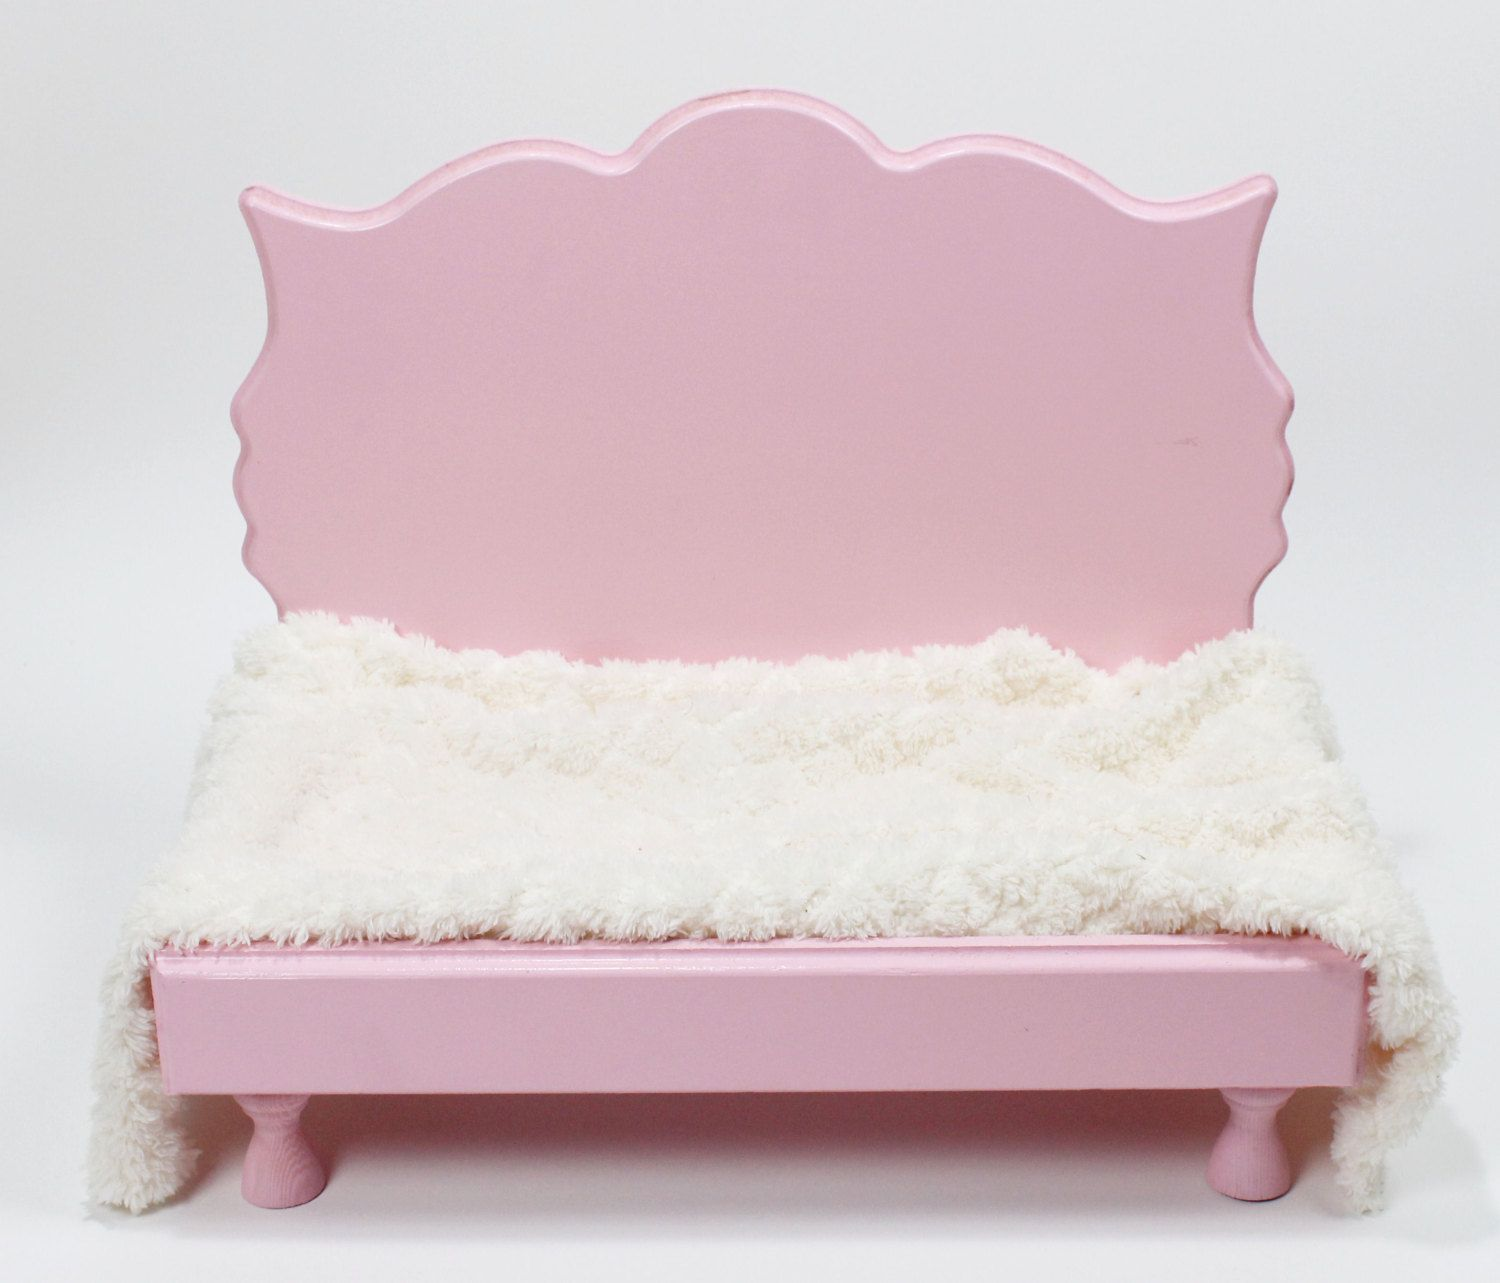 Baby bed newborn - Items Similar To Newborn Photography Prop Bed Fancy Whimsical Baby Bed Prop Daybed Newborn Photography Prop American Girl Doll Bed On Etsy